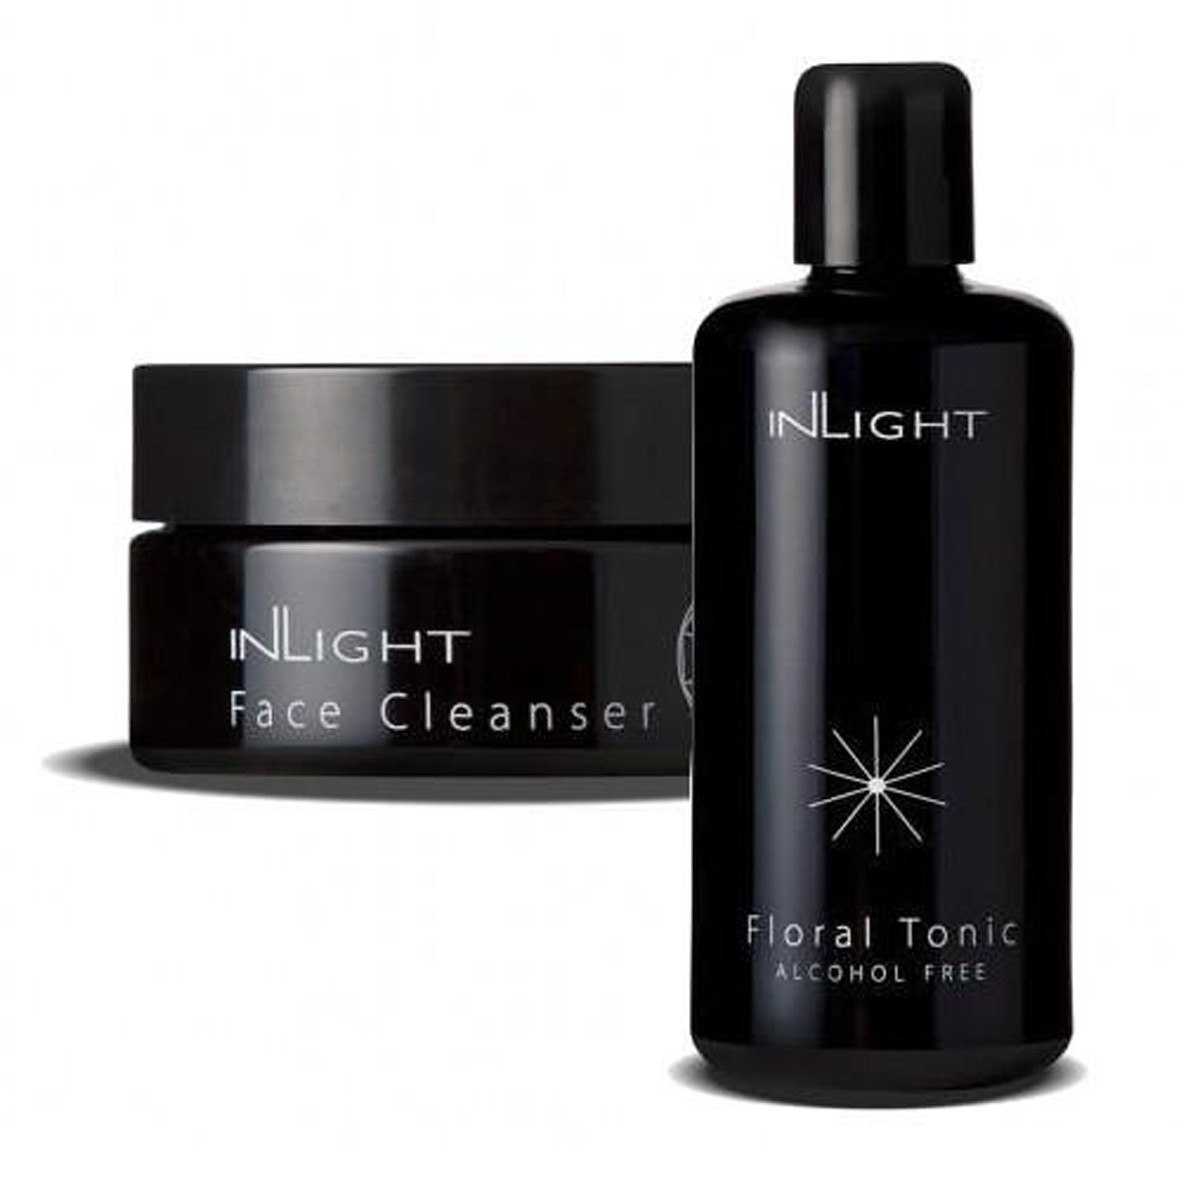 inlight cleanser